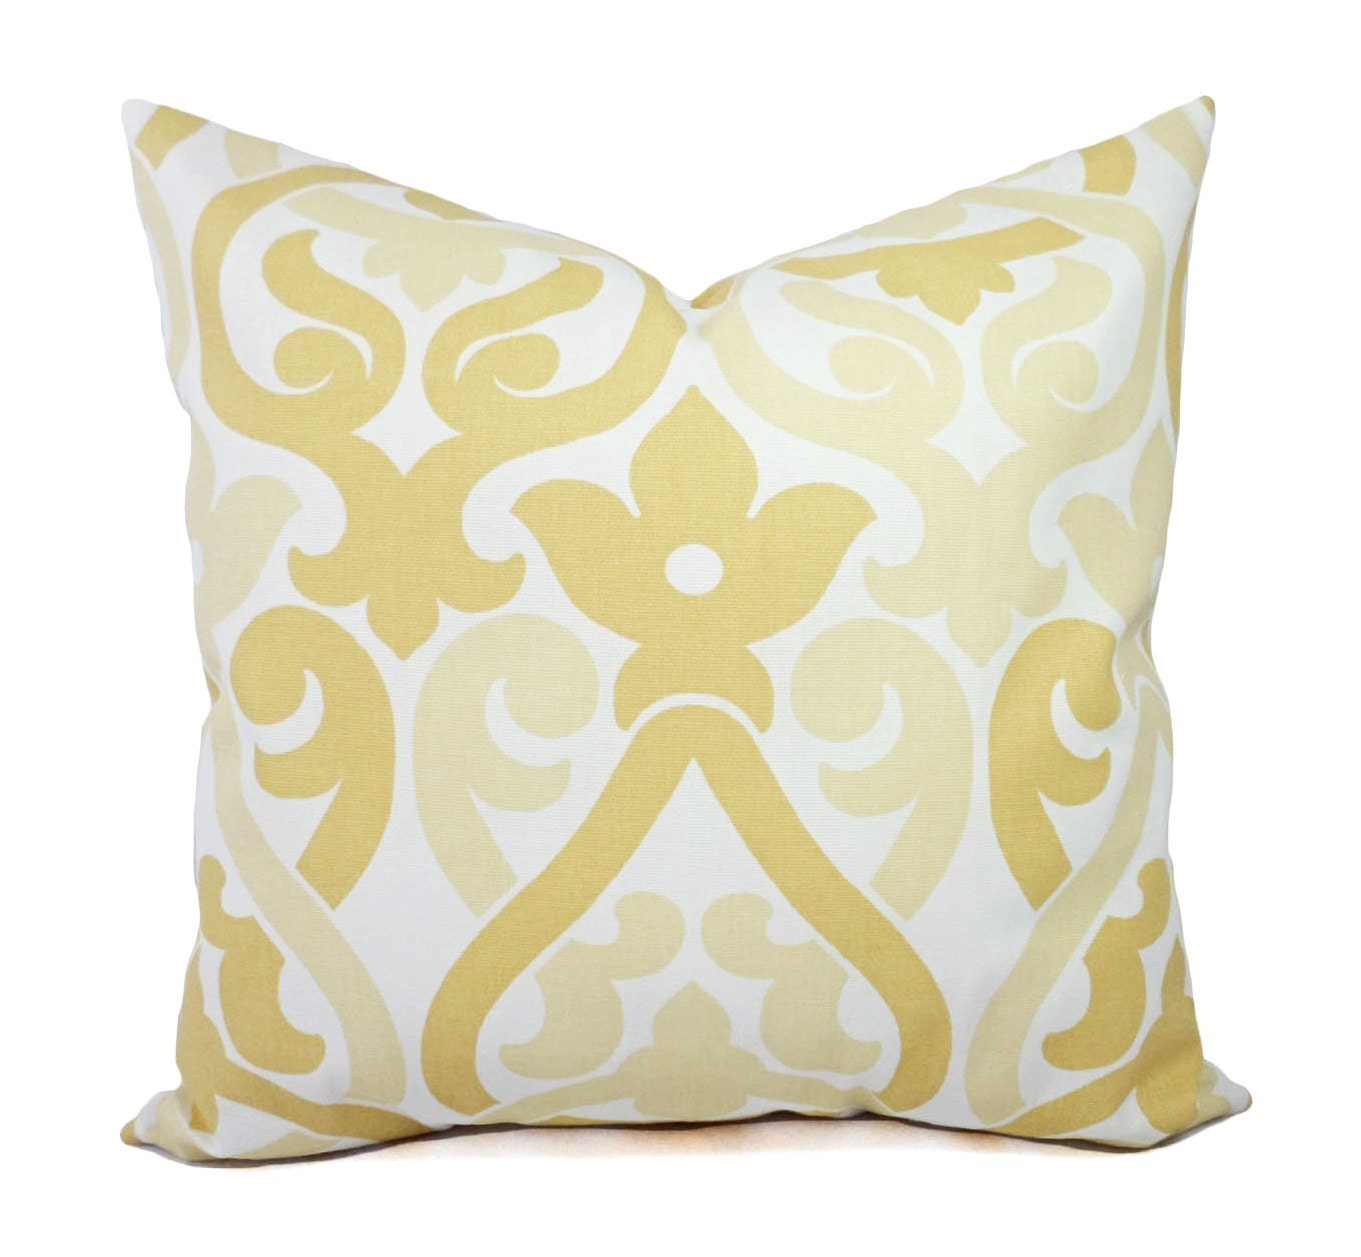 Two Yellow Trellis Decorative Pillow Covers Saffron Yellow